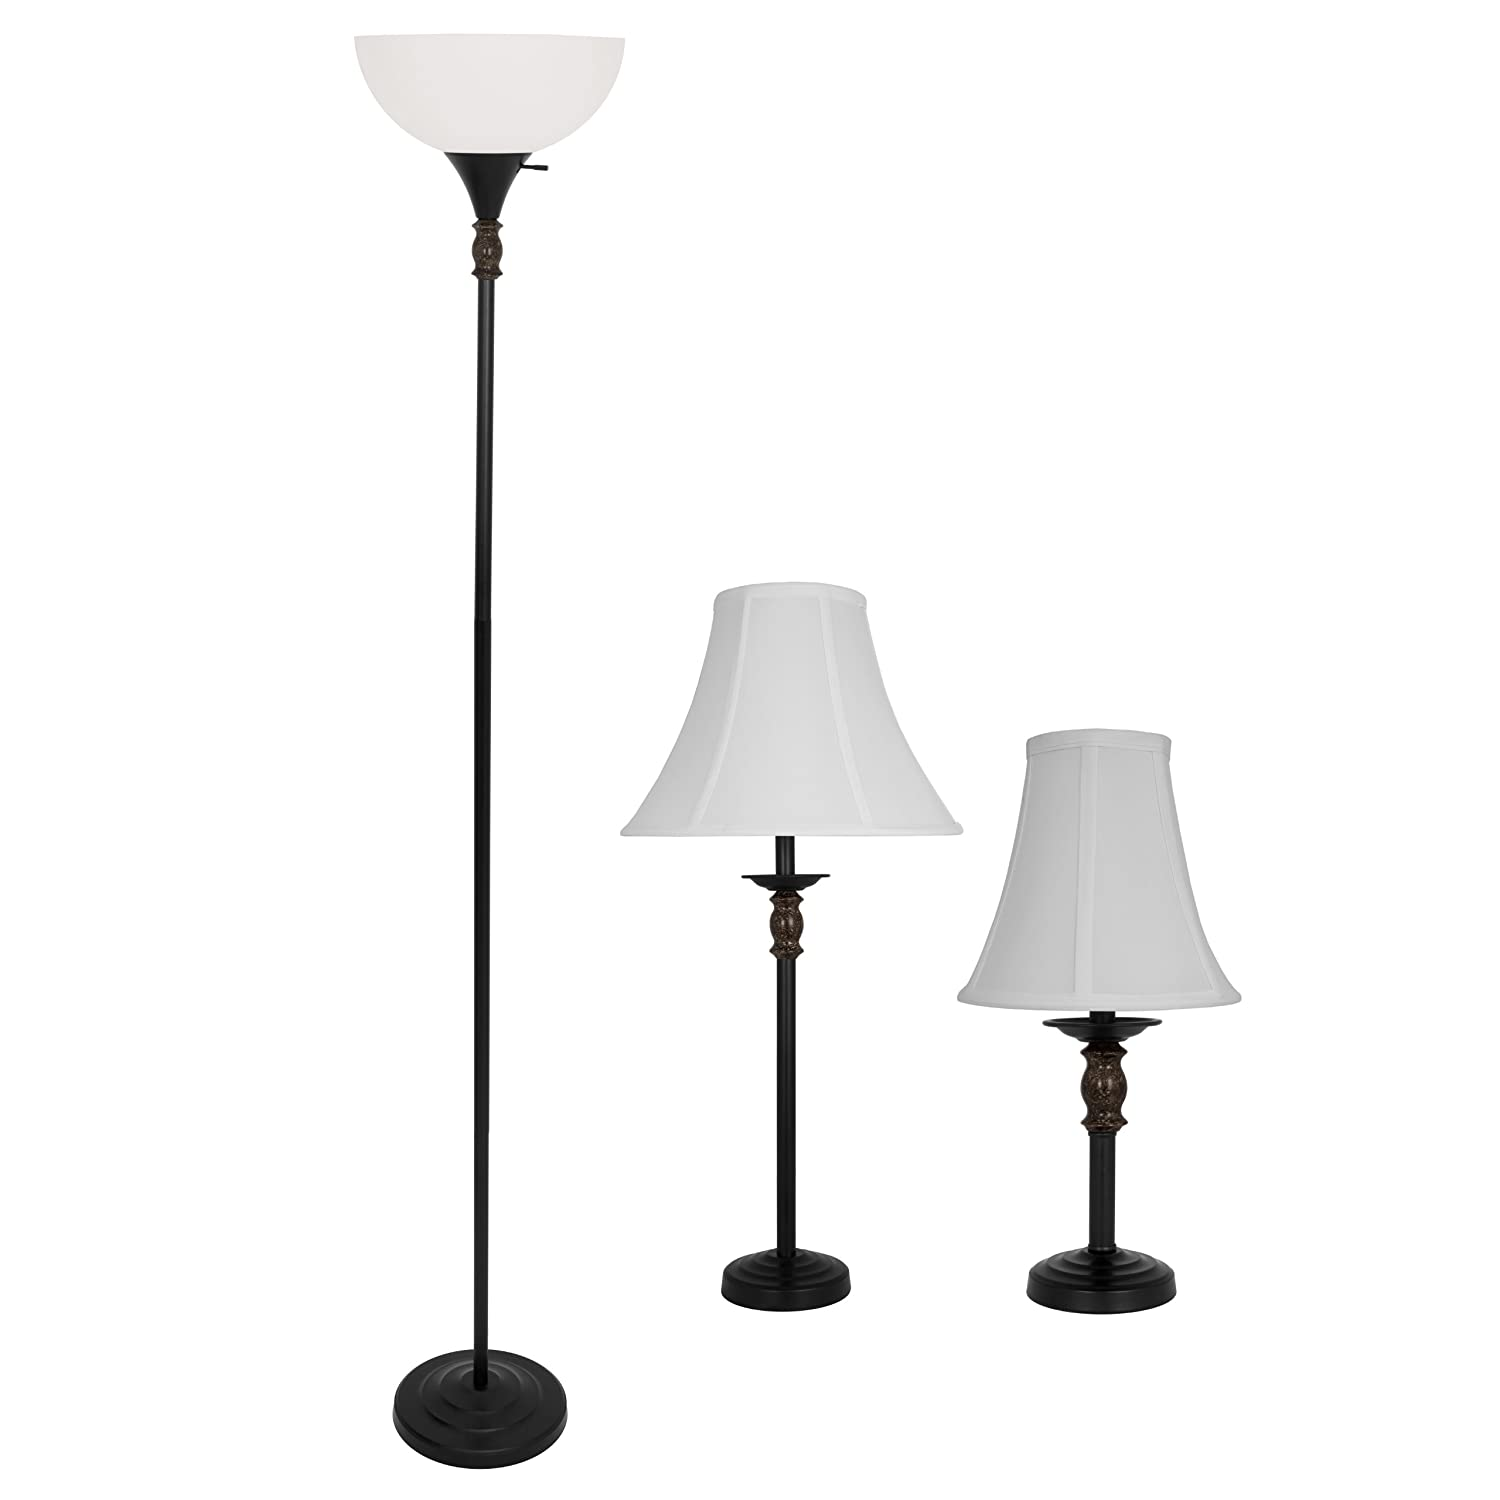 Amazon.com: Floor Lamps: Lamps & Light Fixtures